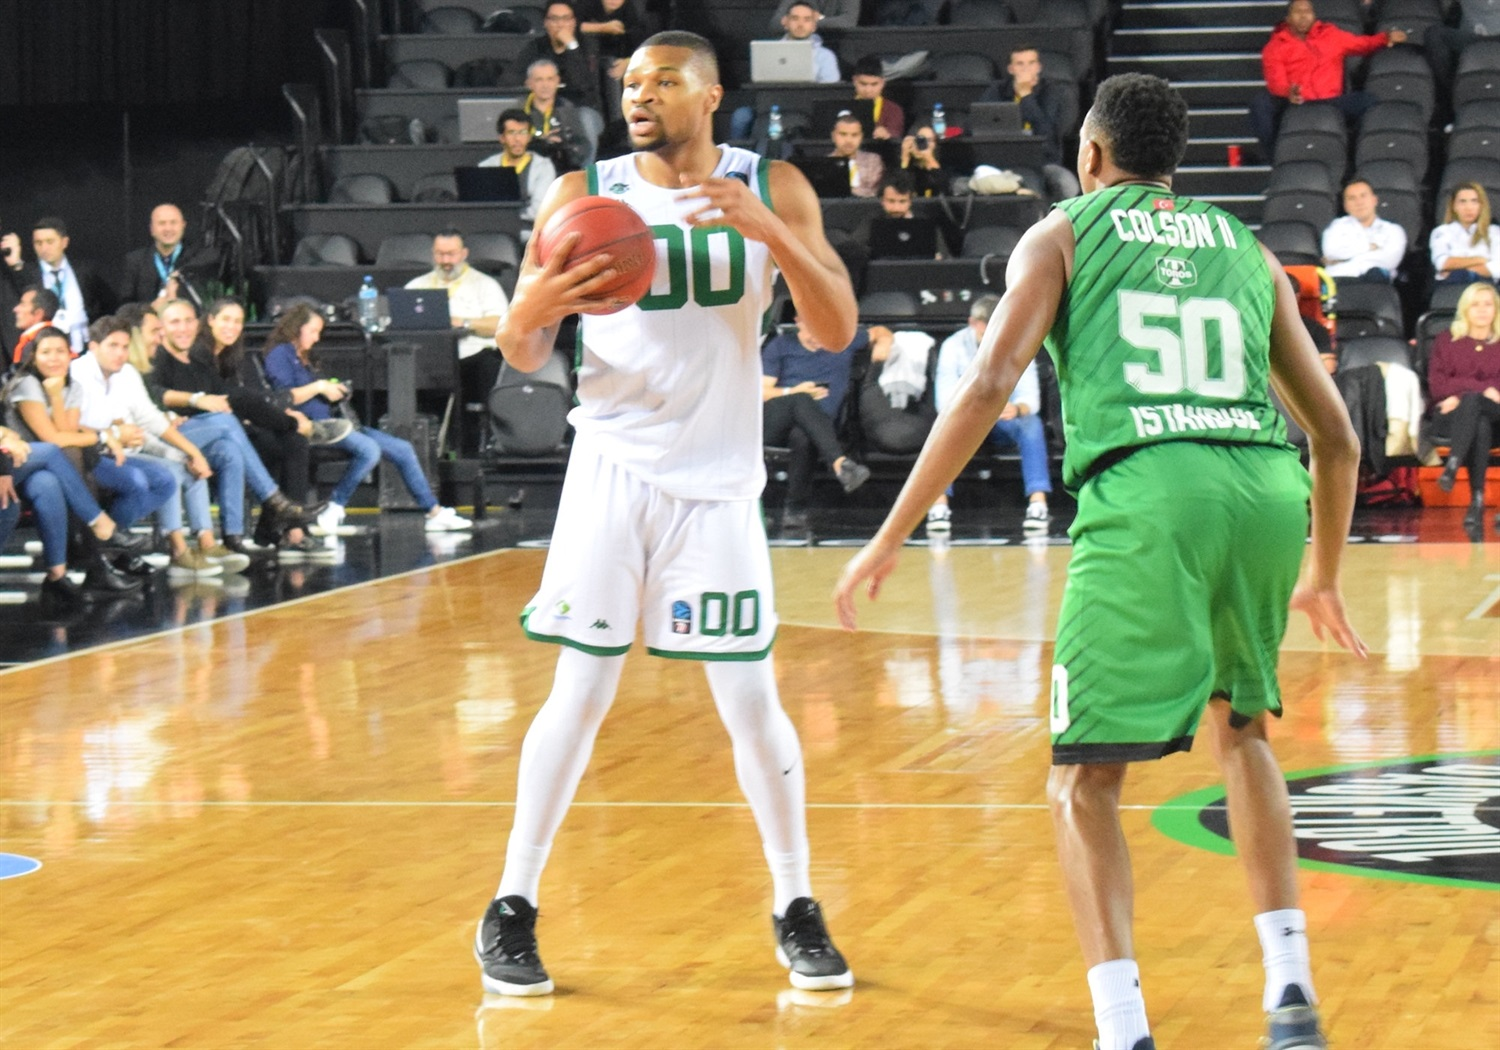 Taylor Smith - Nanterre 92 (photo Darussafaka) - EC19